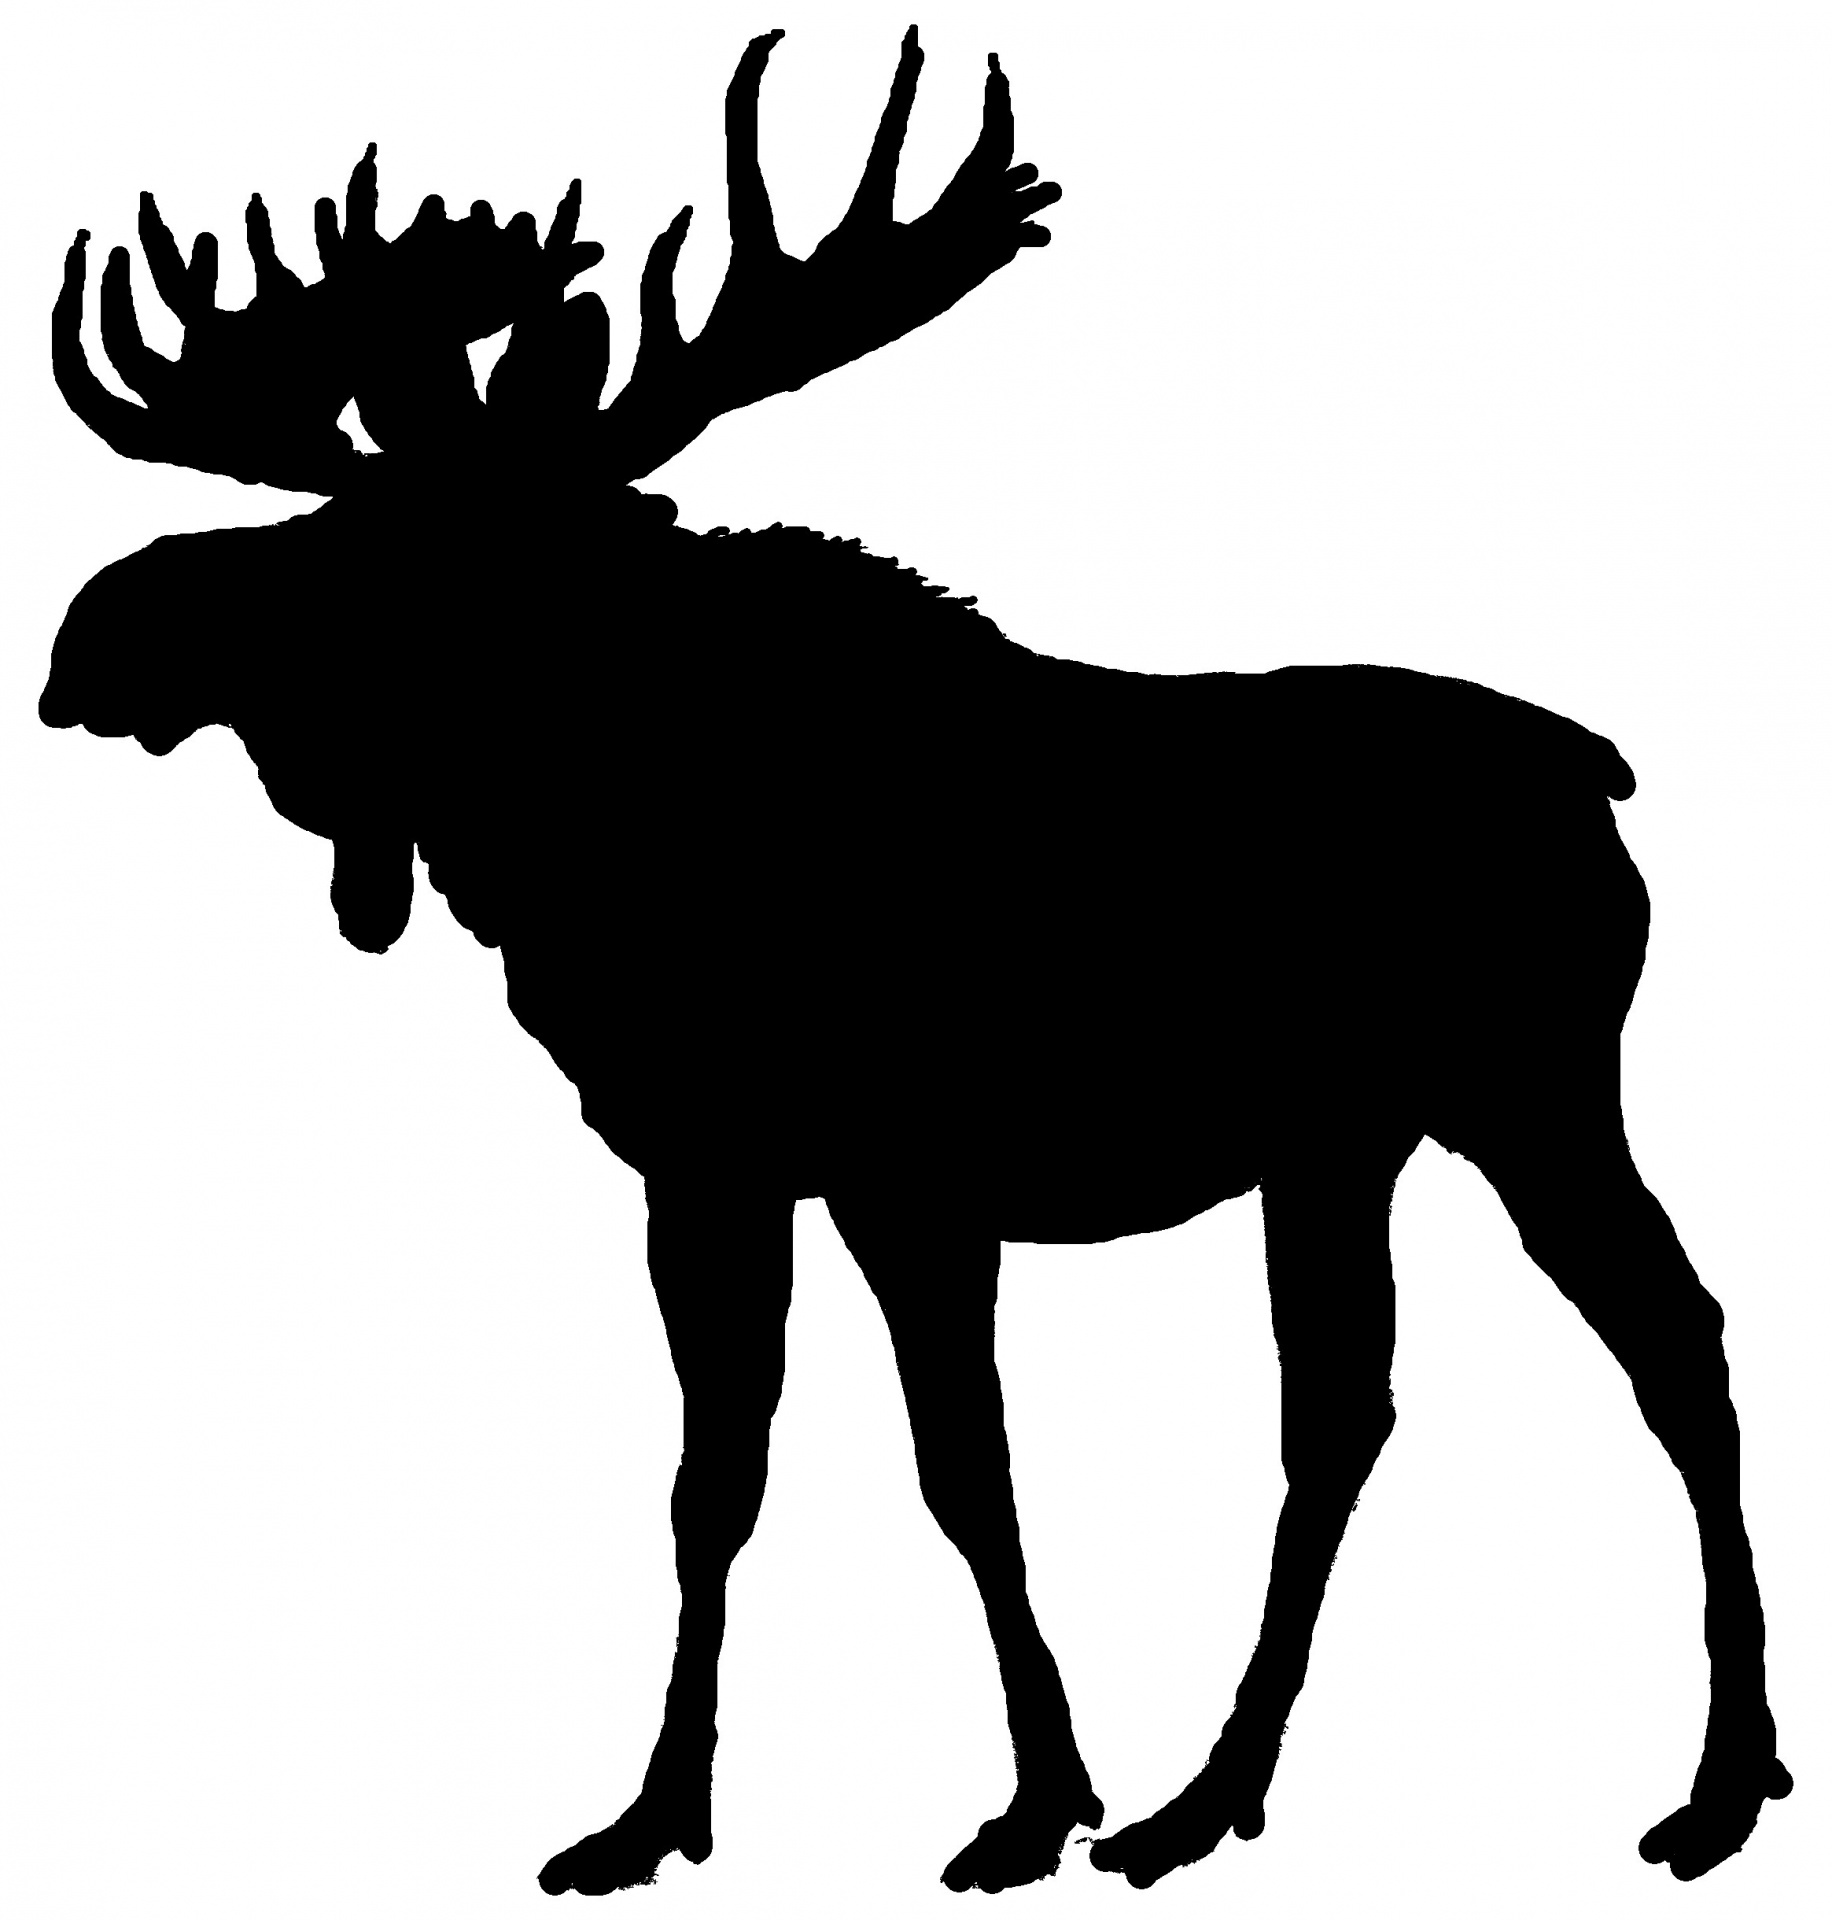 Moose clipart moose outline, Moose moose outline Transparent.